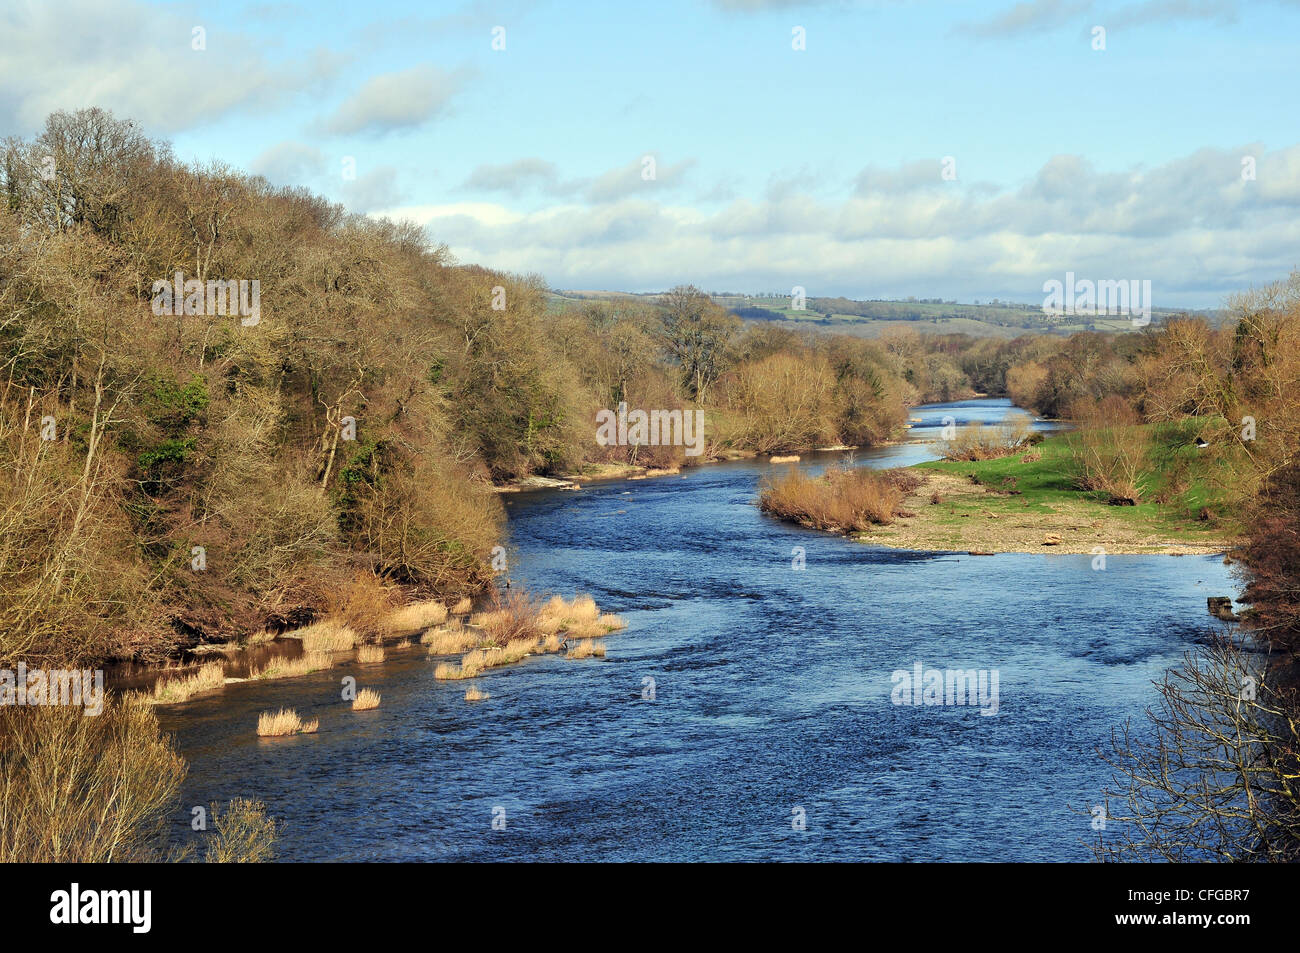 River Wye at Hay on Wye, the world famous Town of Books and the home of the Hay Festival. Photographed in early - Stock Image